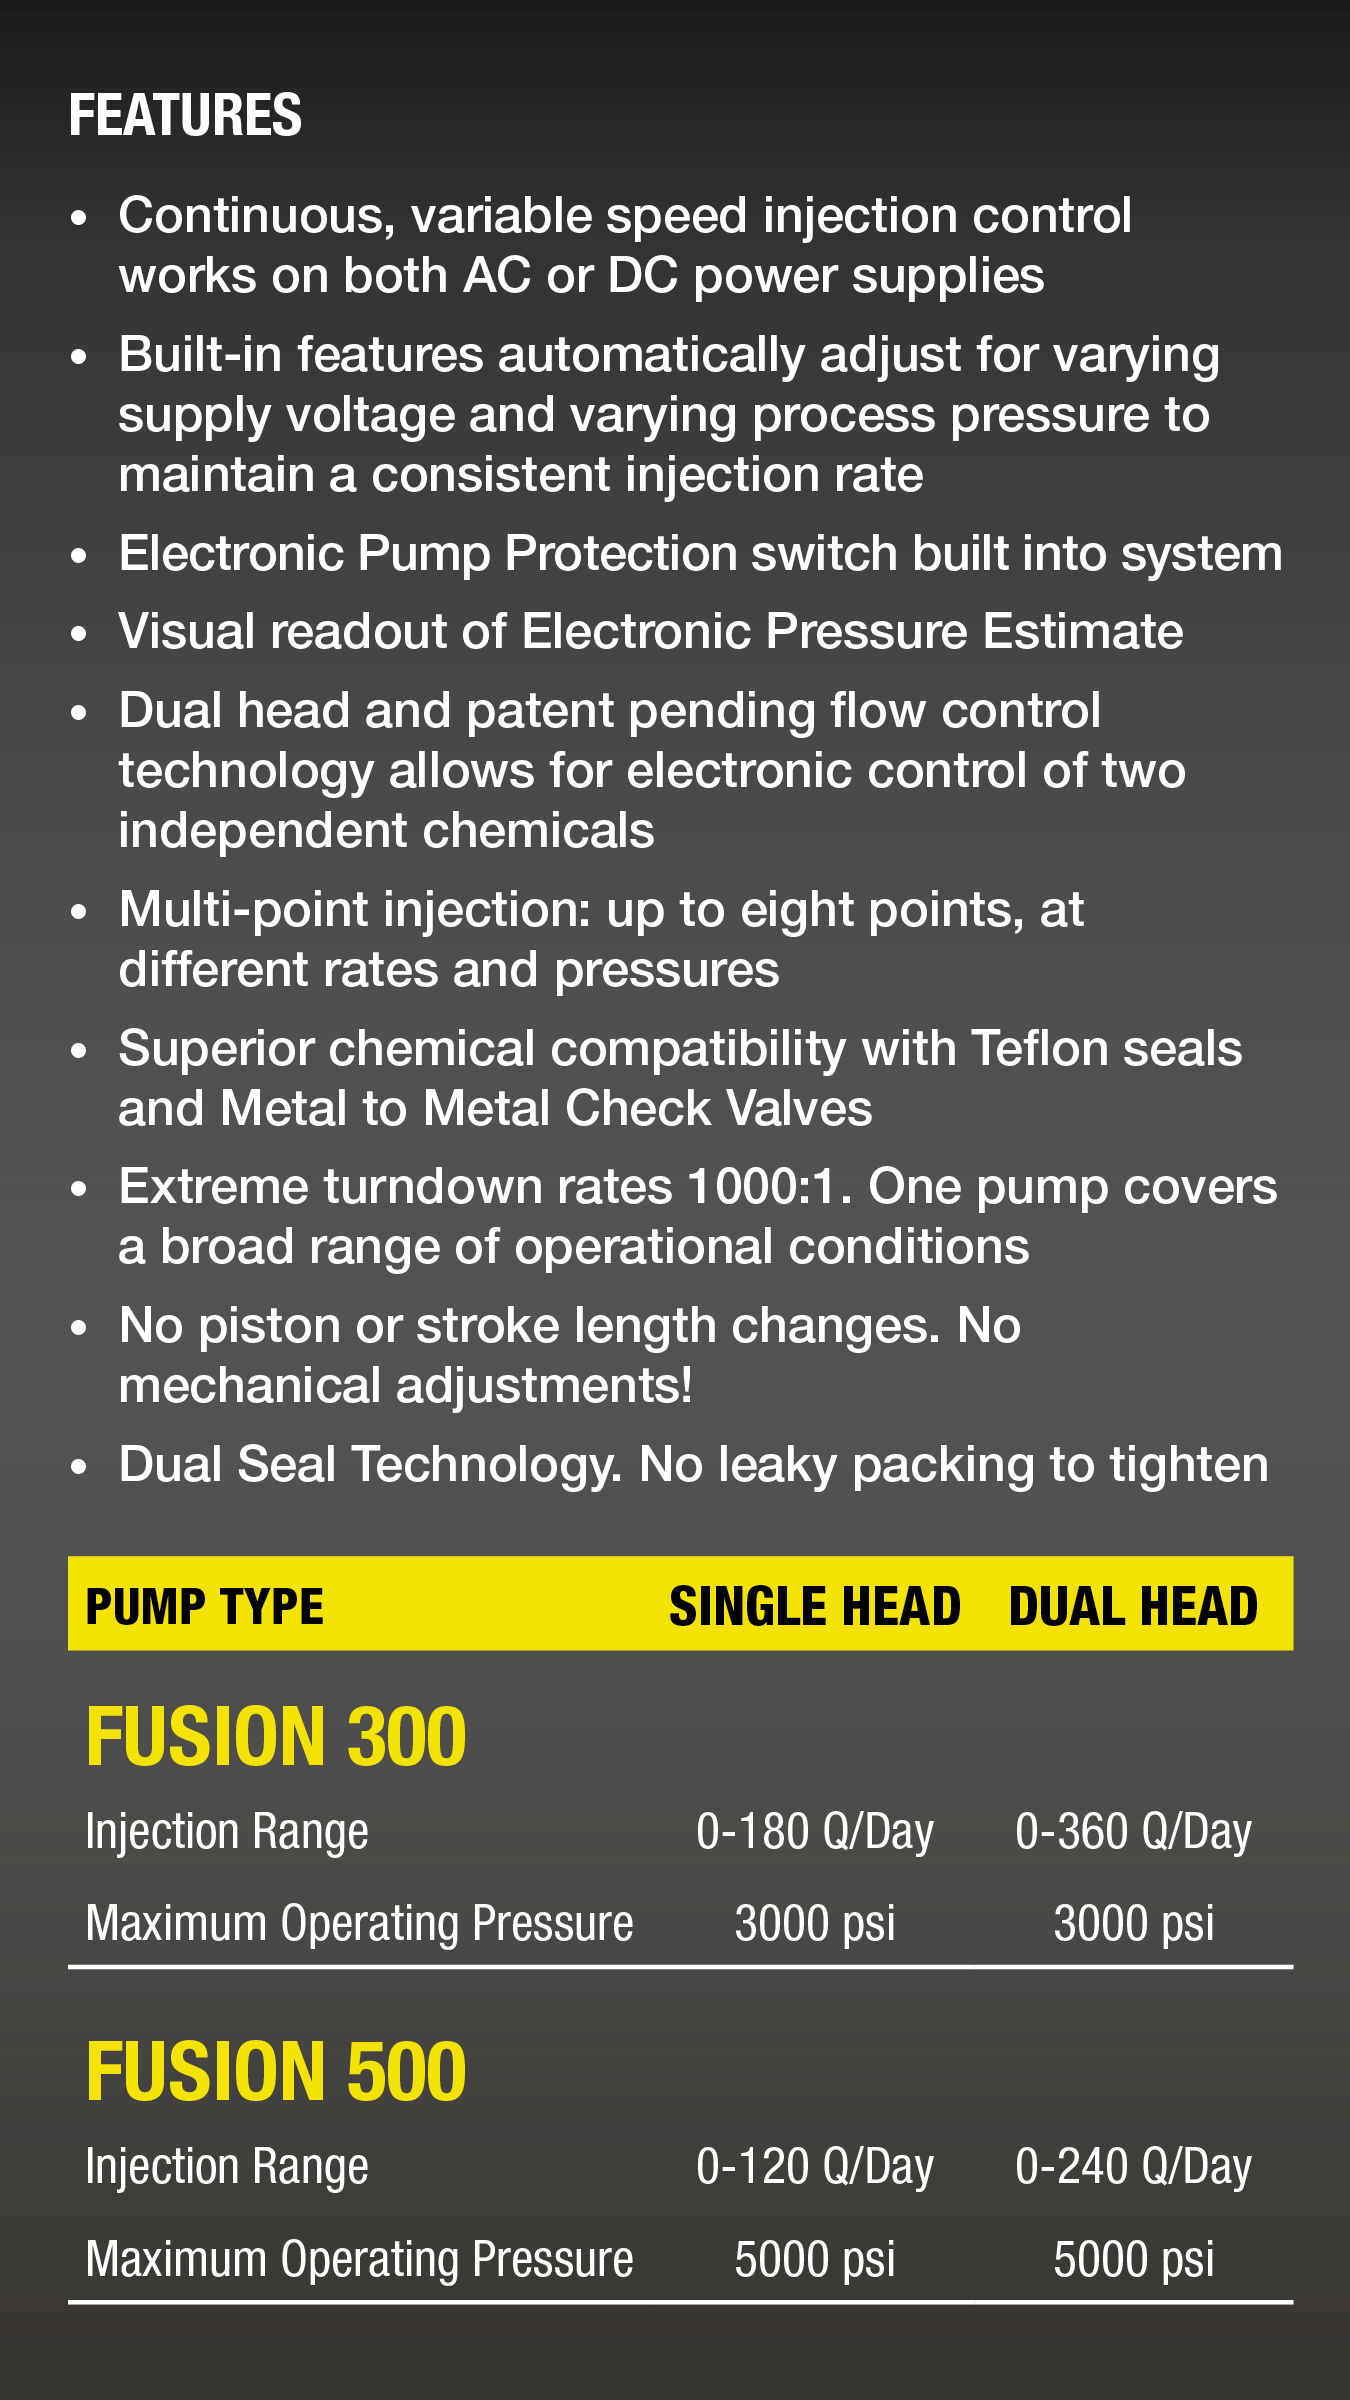 FUSION FEATURES